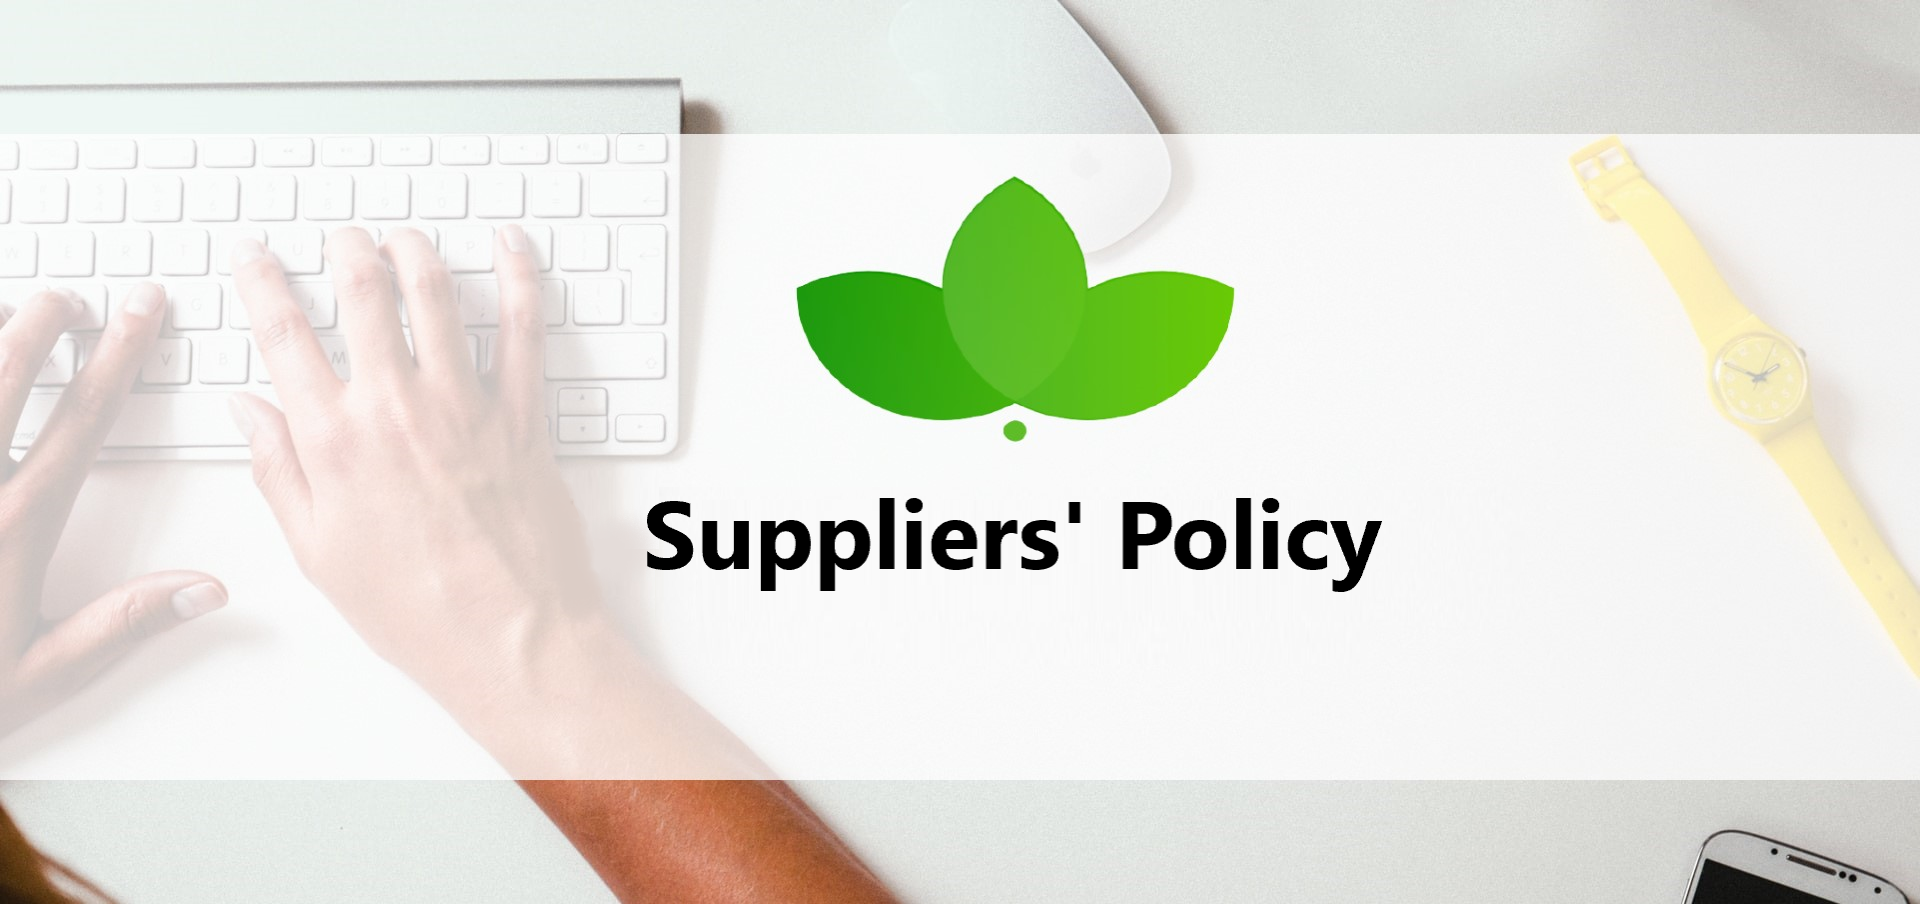 Suppliers' Policy